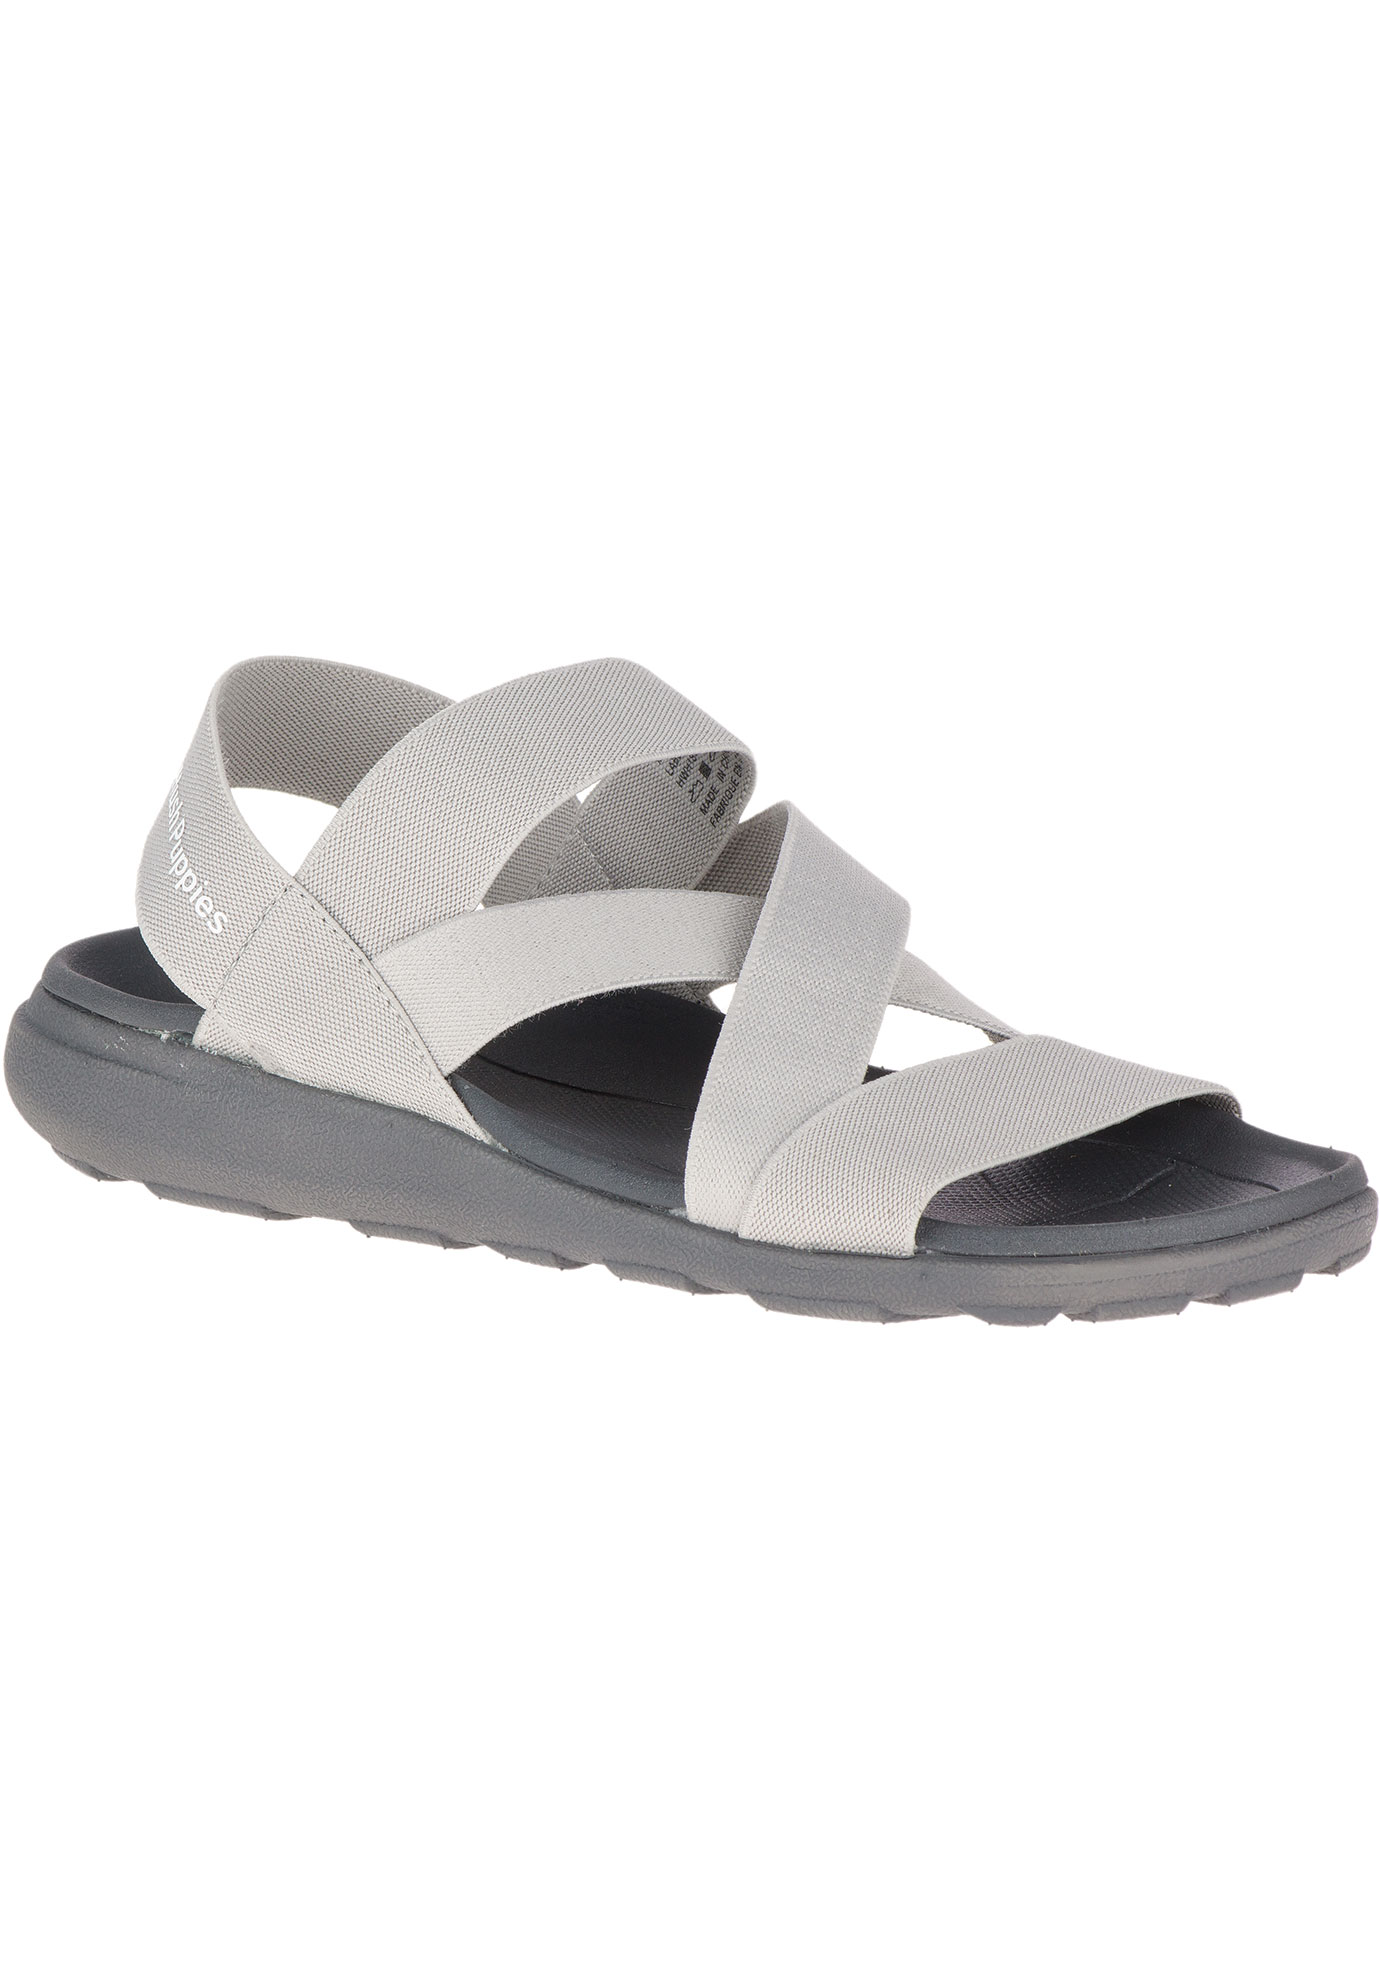 sale geniue stockist Labsky Elastic Sandals by Hush Puppies® Cheapest sale online free shipping genuine free shipping purchase find great wjEBUp9r